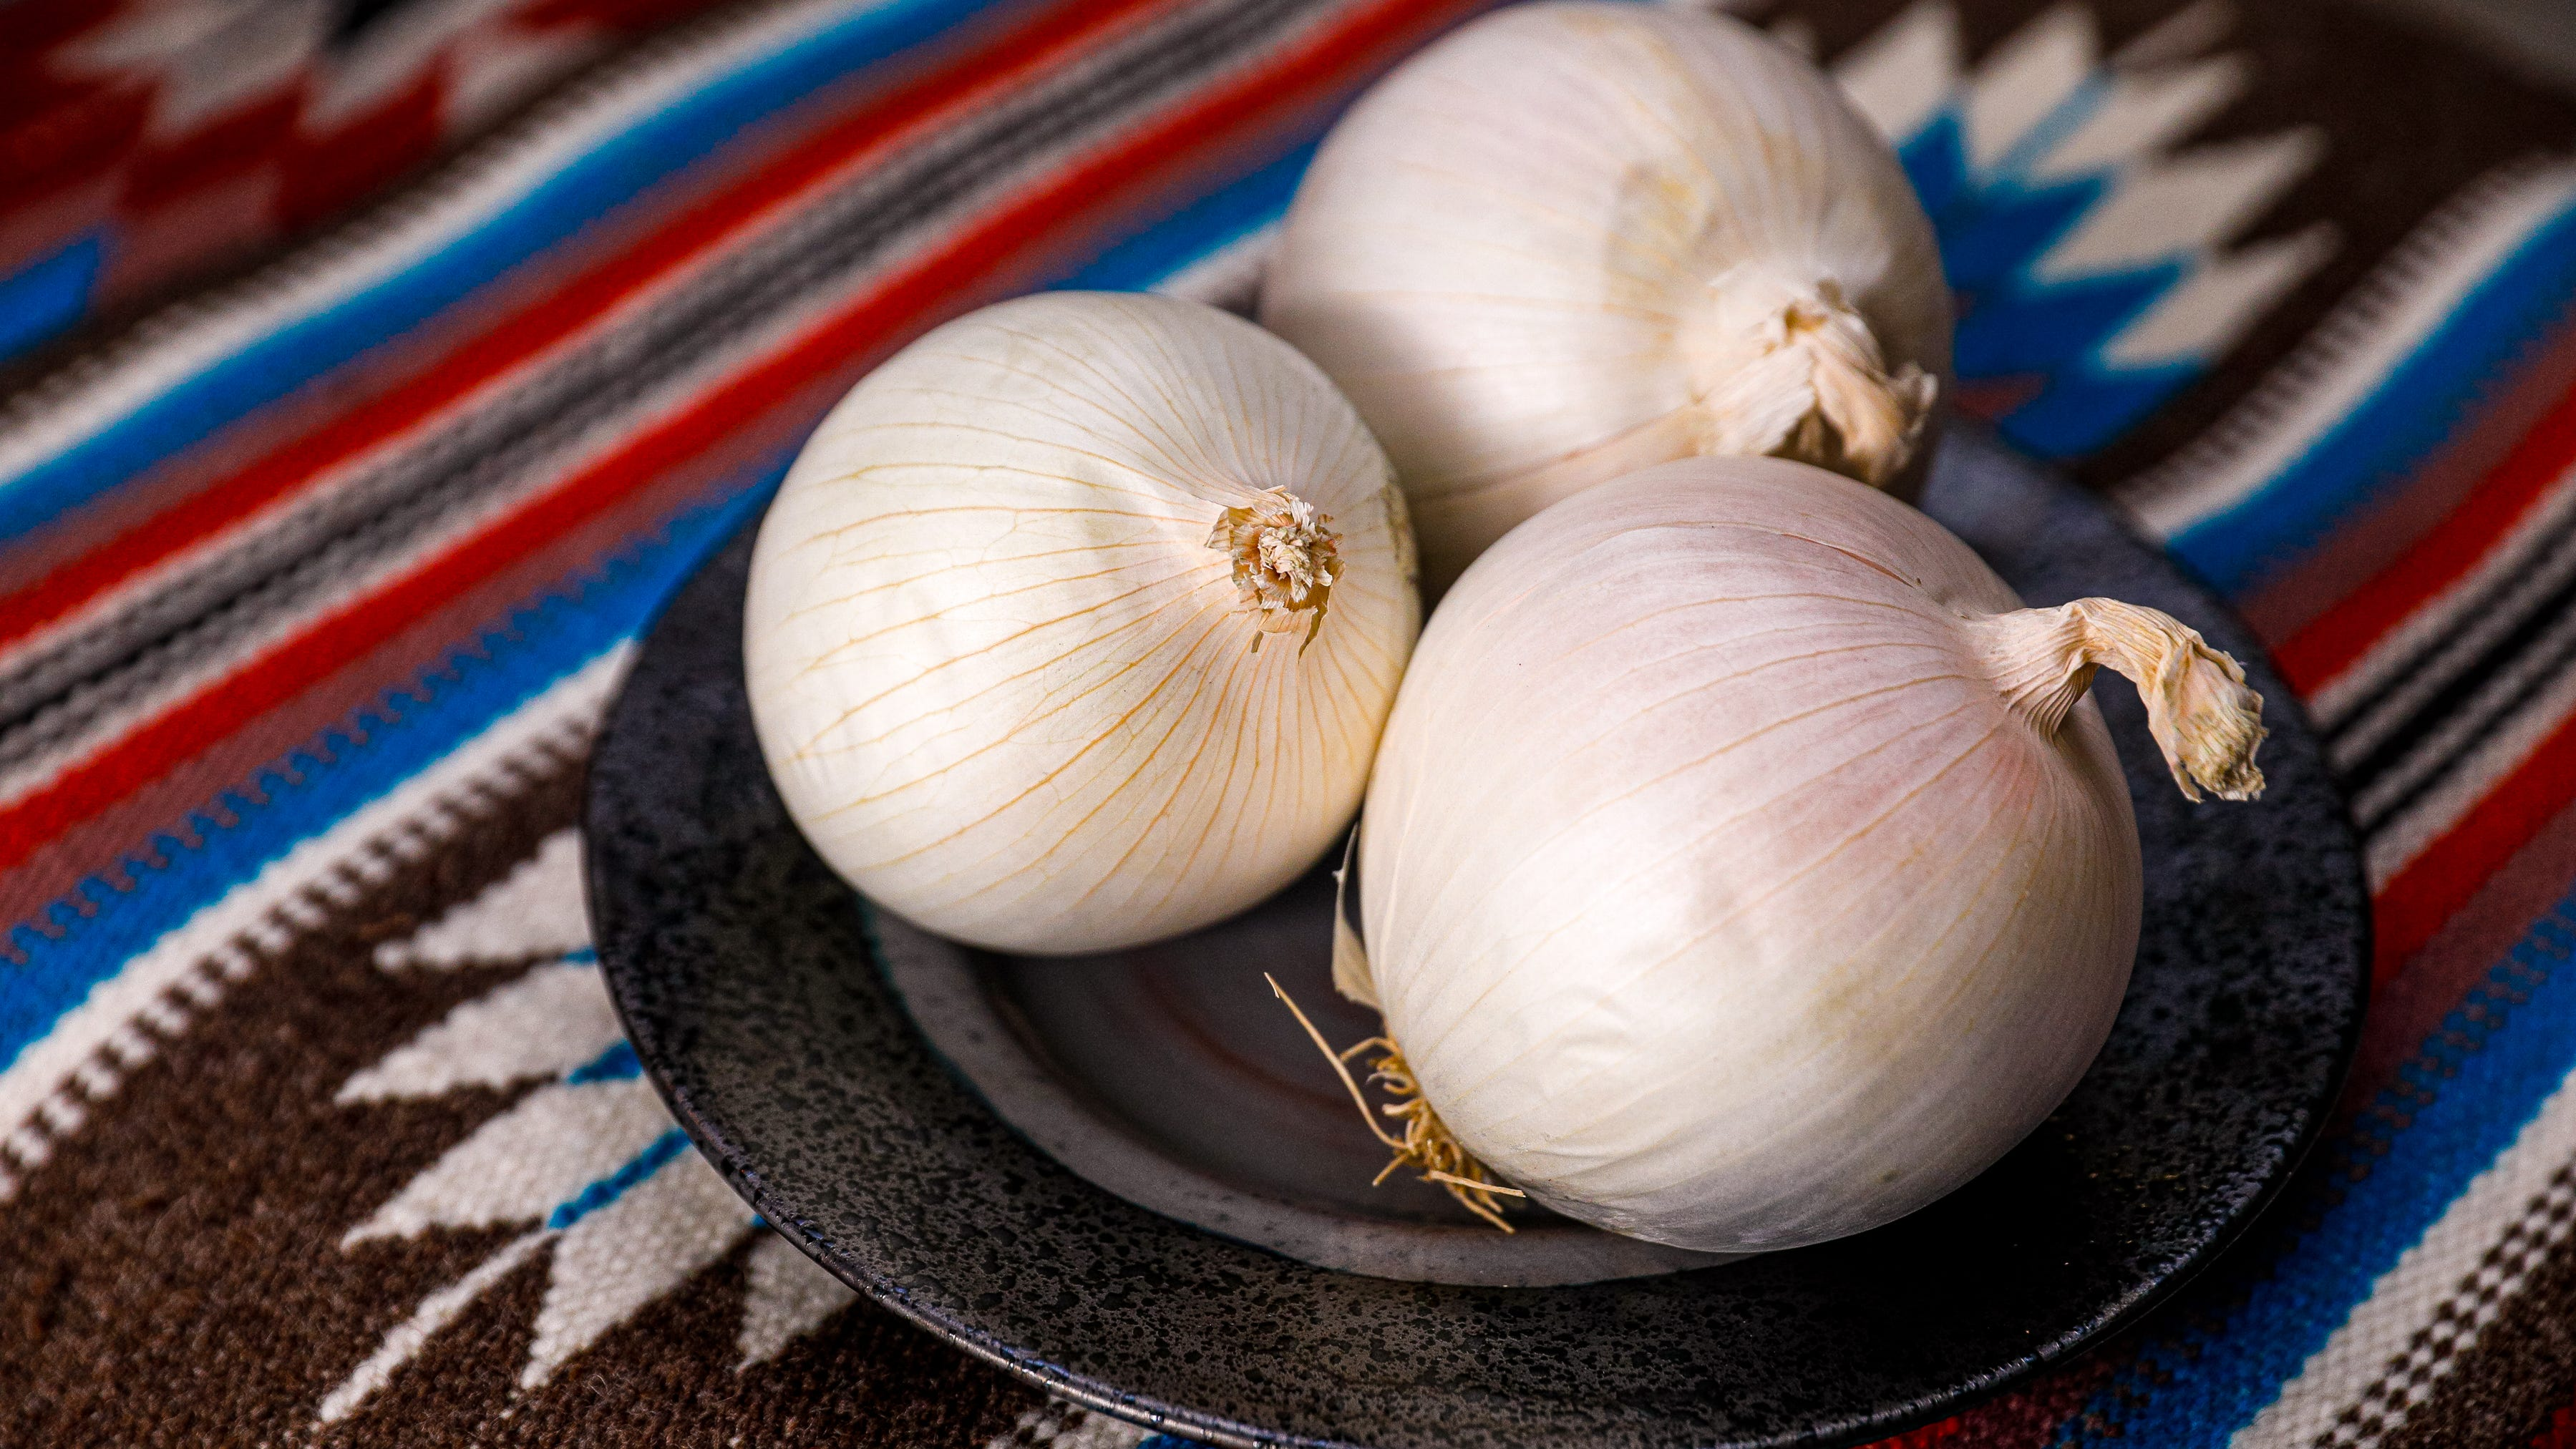 Onions linked to Wisconsin salmonella cases; throw them out, CDC says